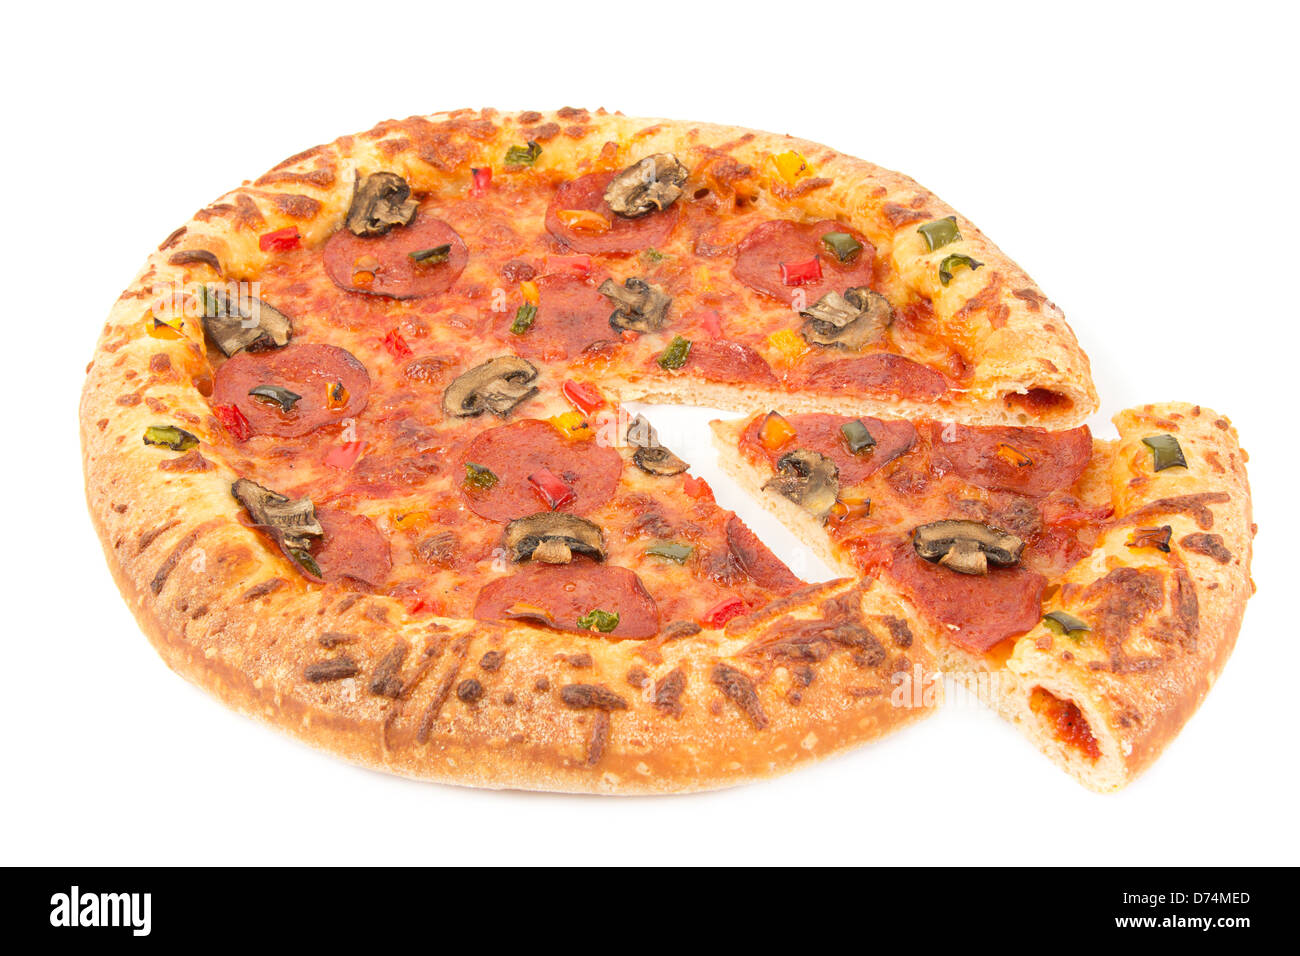 Whole pepperoni pizza top view with a slice cut - Stock Image